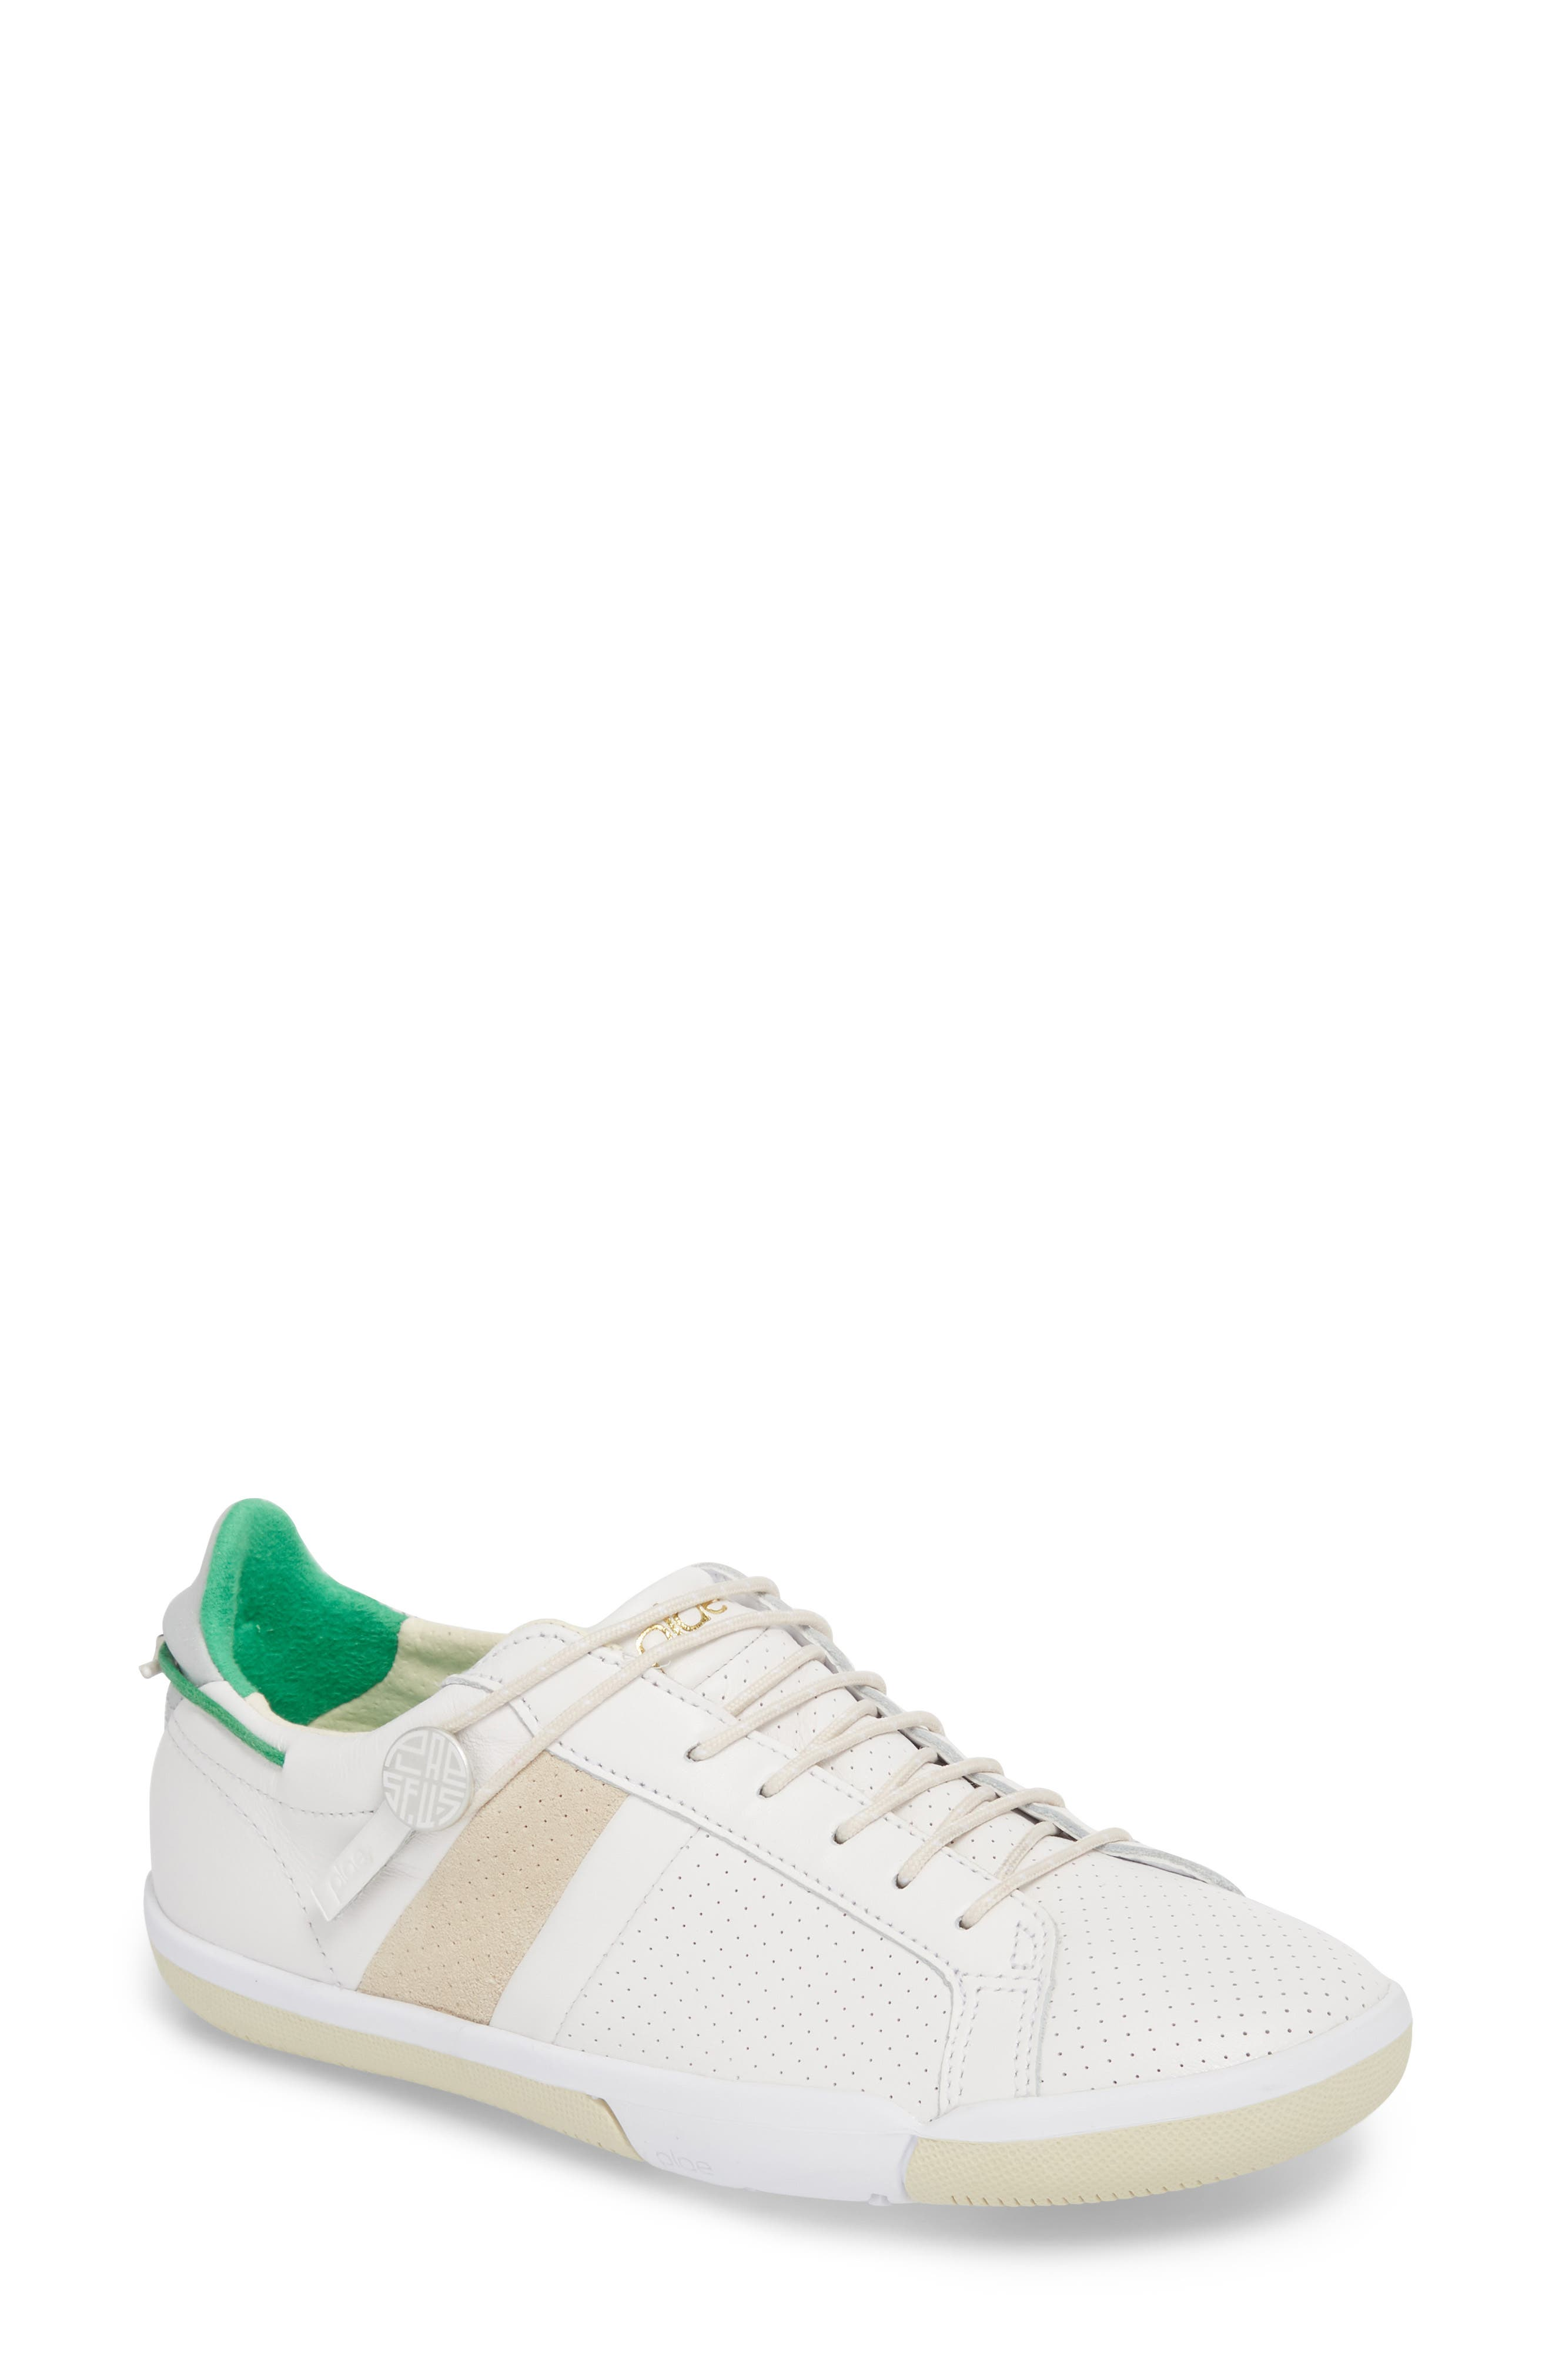 Mulberry Sneaker,                             Main thumbnail 1, color,                             White Leather